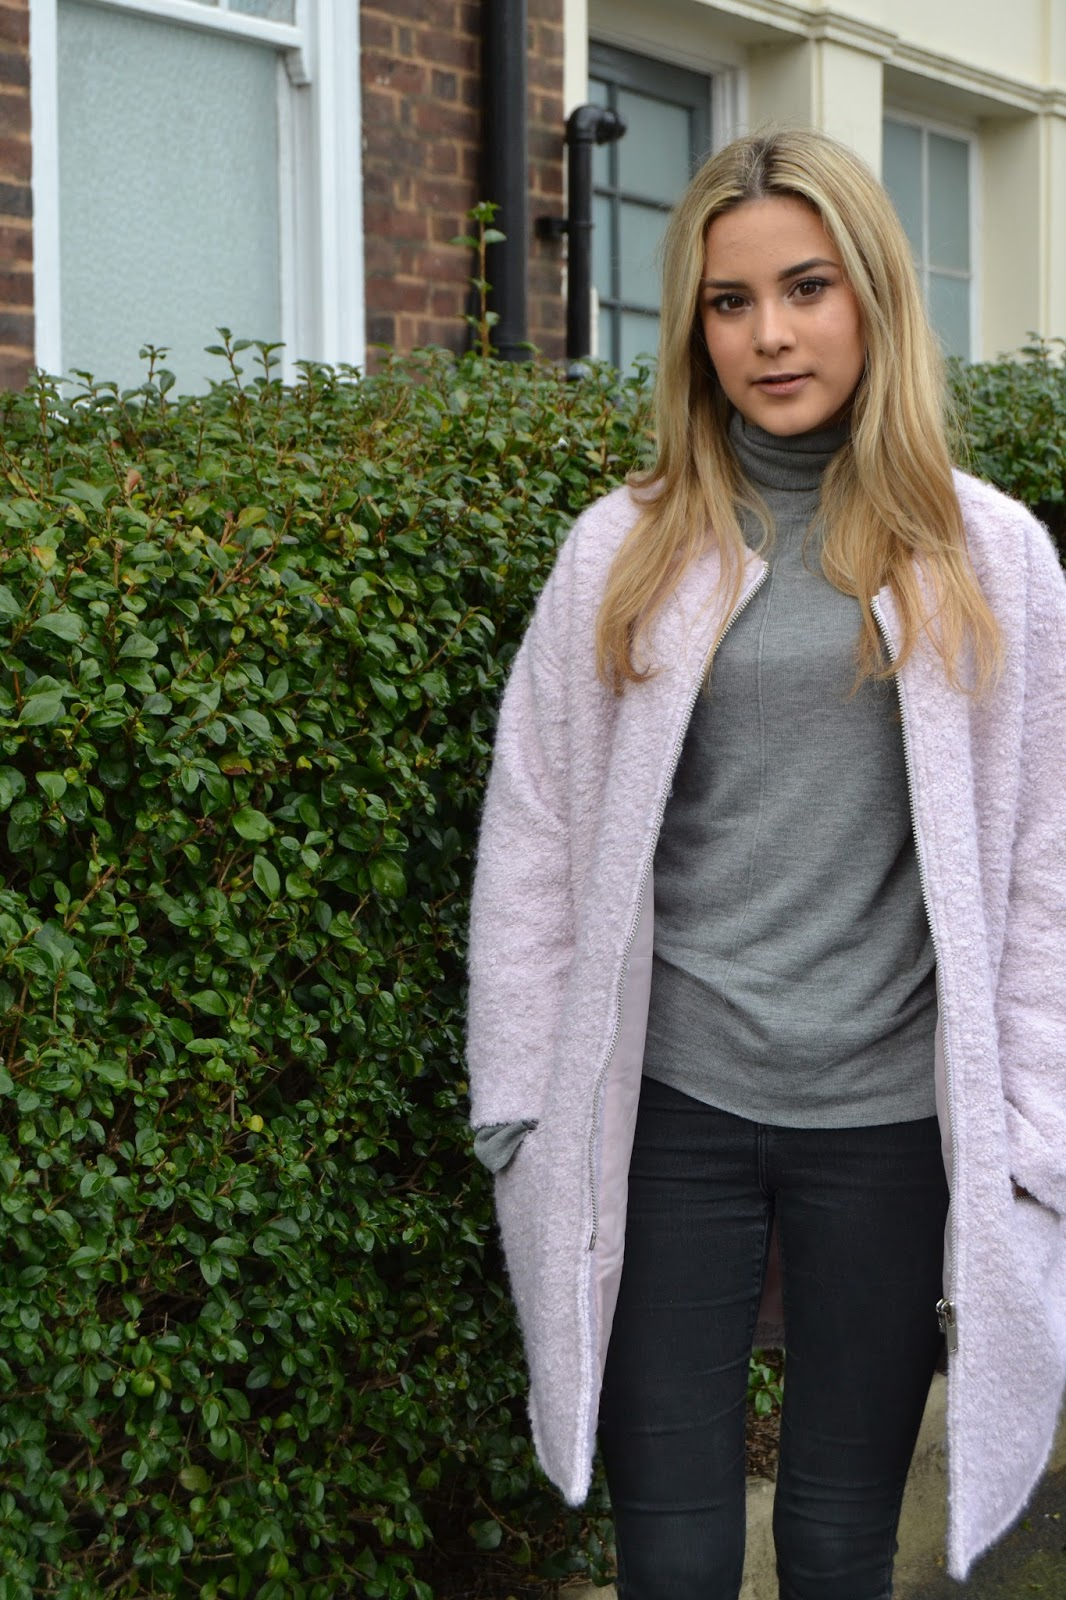 ss16 spring winter style outfit